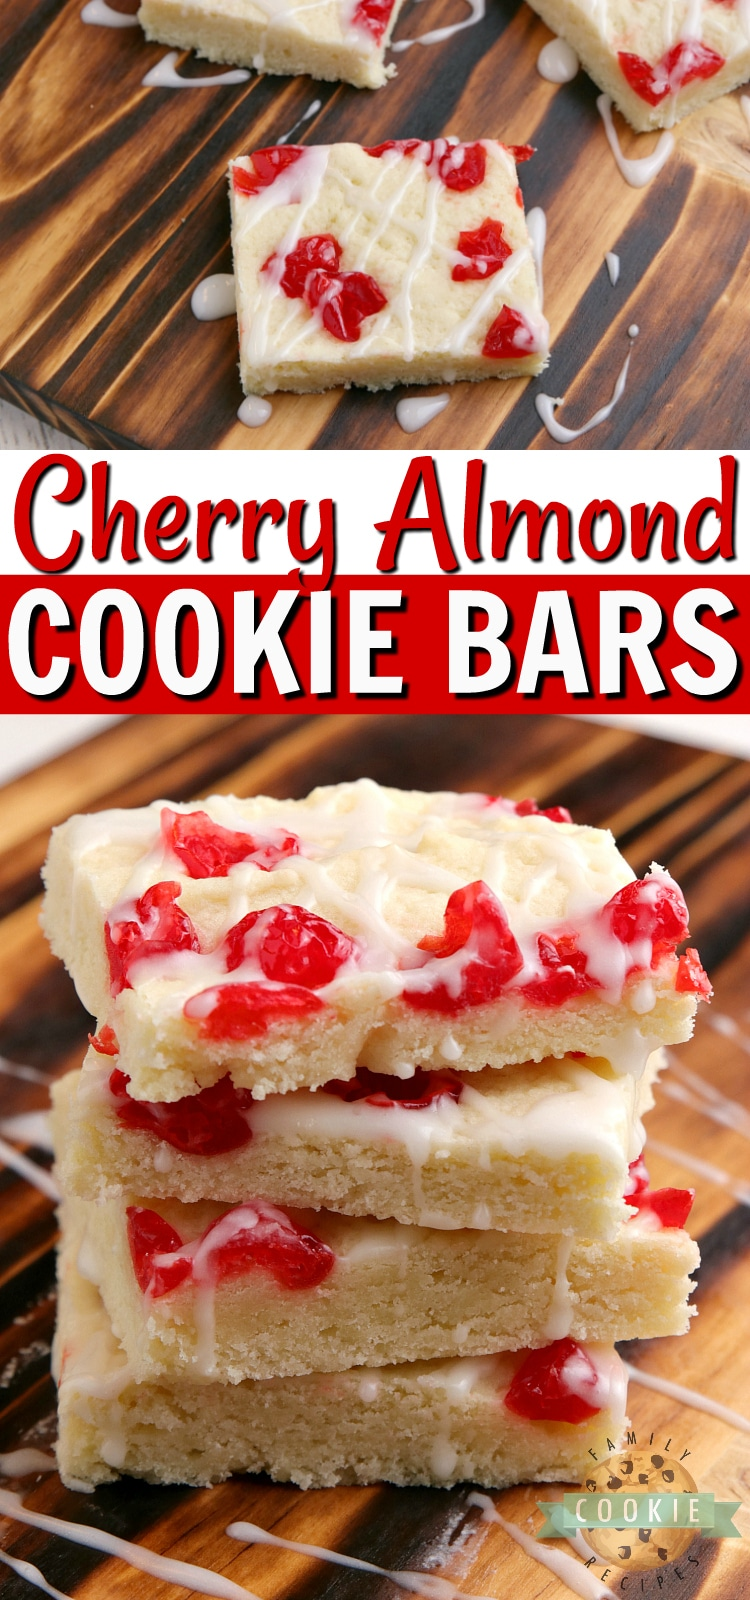 Cherry Almond Cookie Bars are simple cookie bars that fall somewhere between a shortbread and a sugar cookie. This cookie bar recipe is packed with almond flavoring and topped with chopped maraschino cherries and a simple powdered sugar glaze. via @familycookierecipes